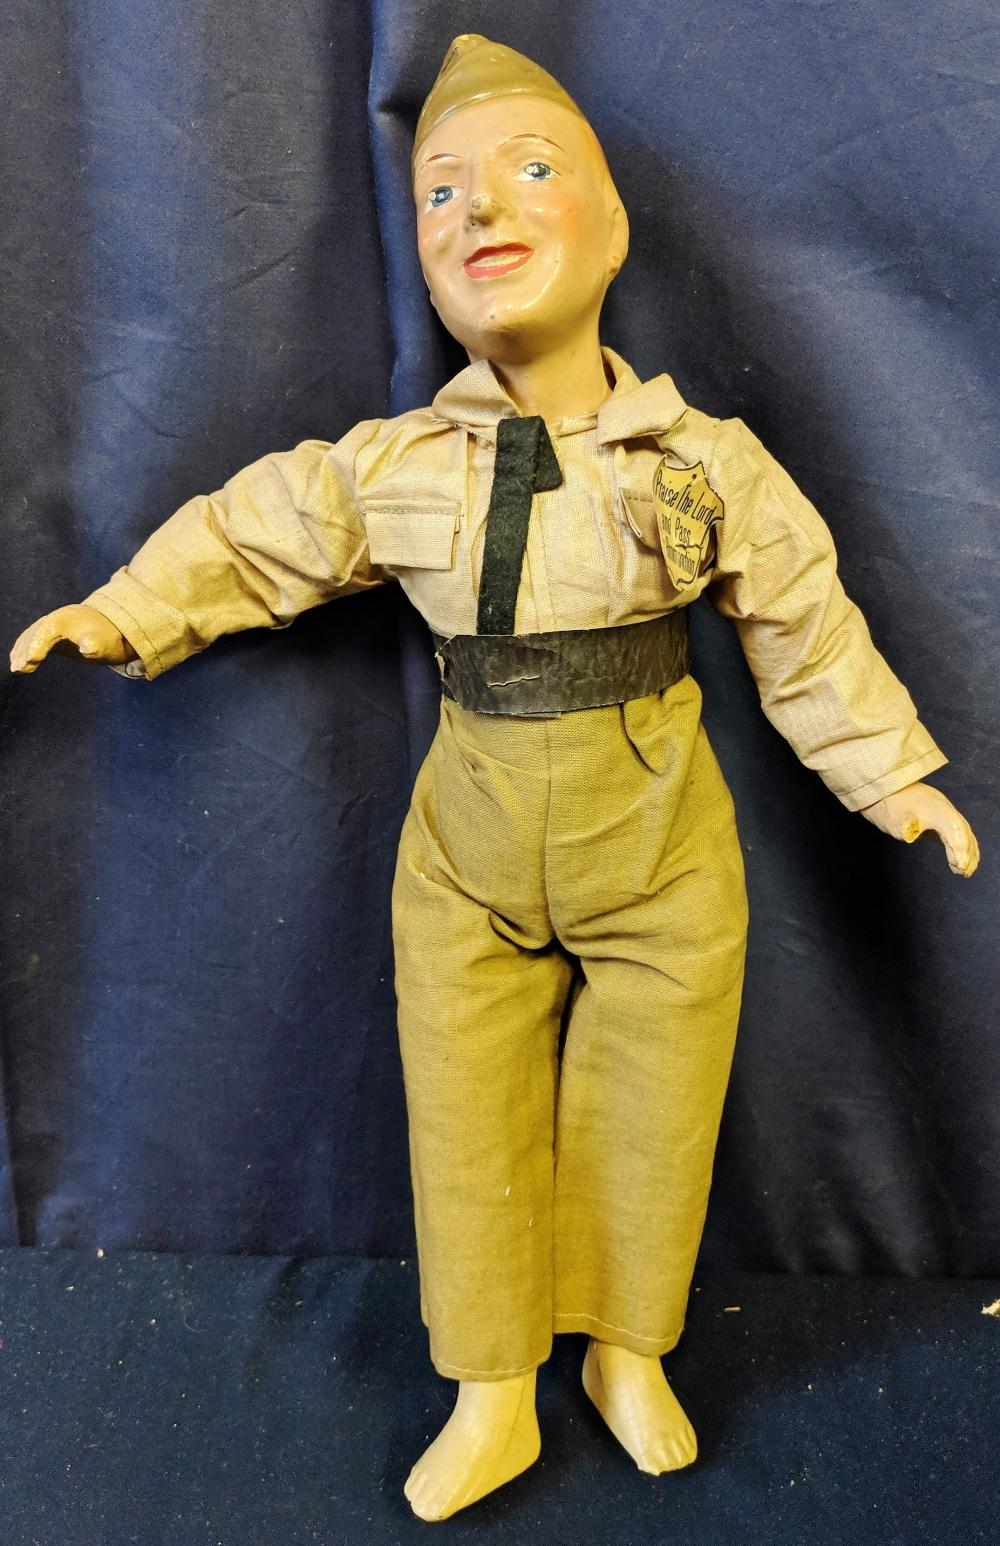 Lot 2: WWII Soldier Doll